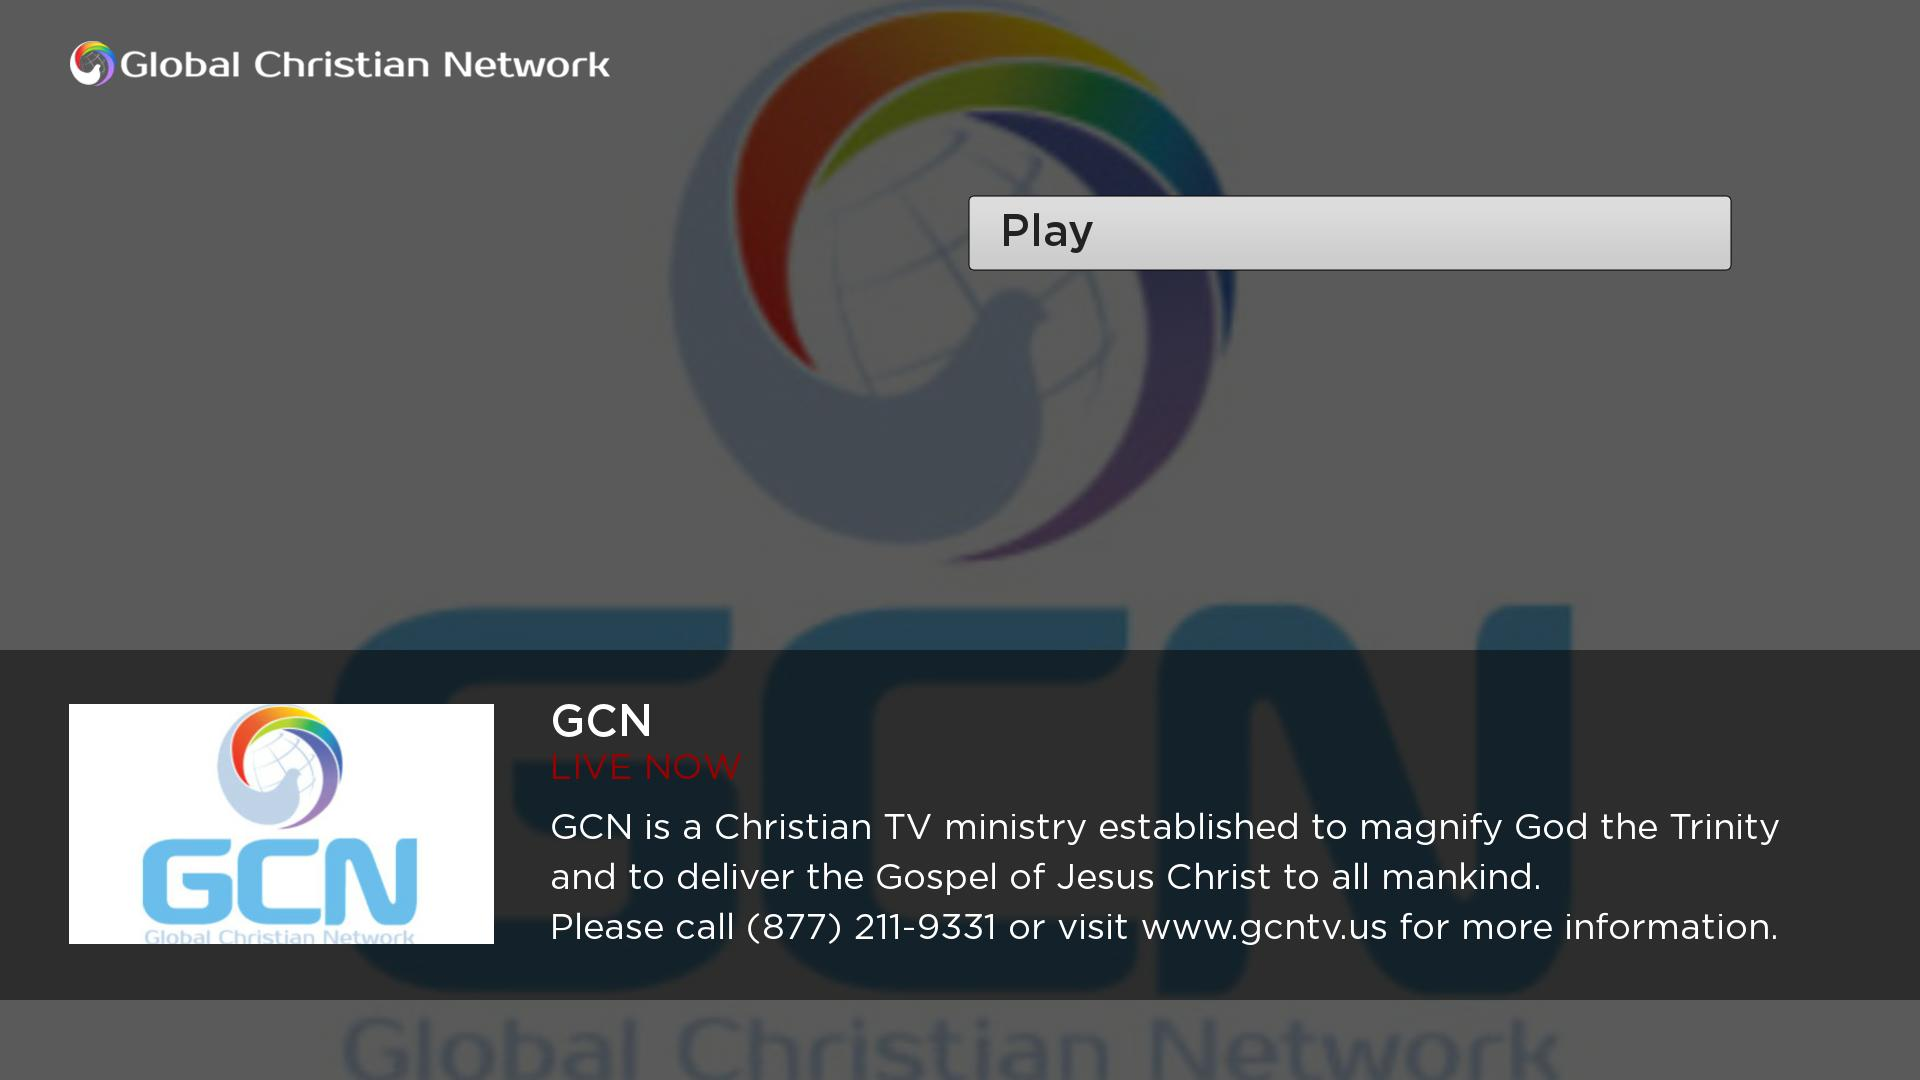 Global Christian Network (GCN) Screenshot 002